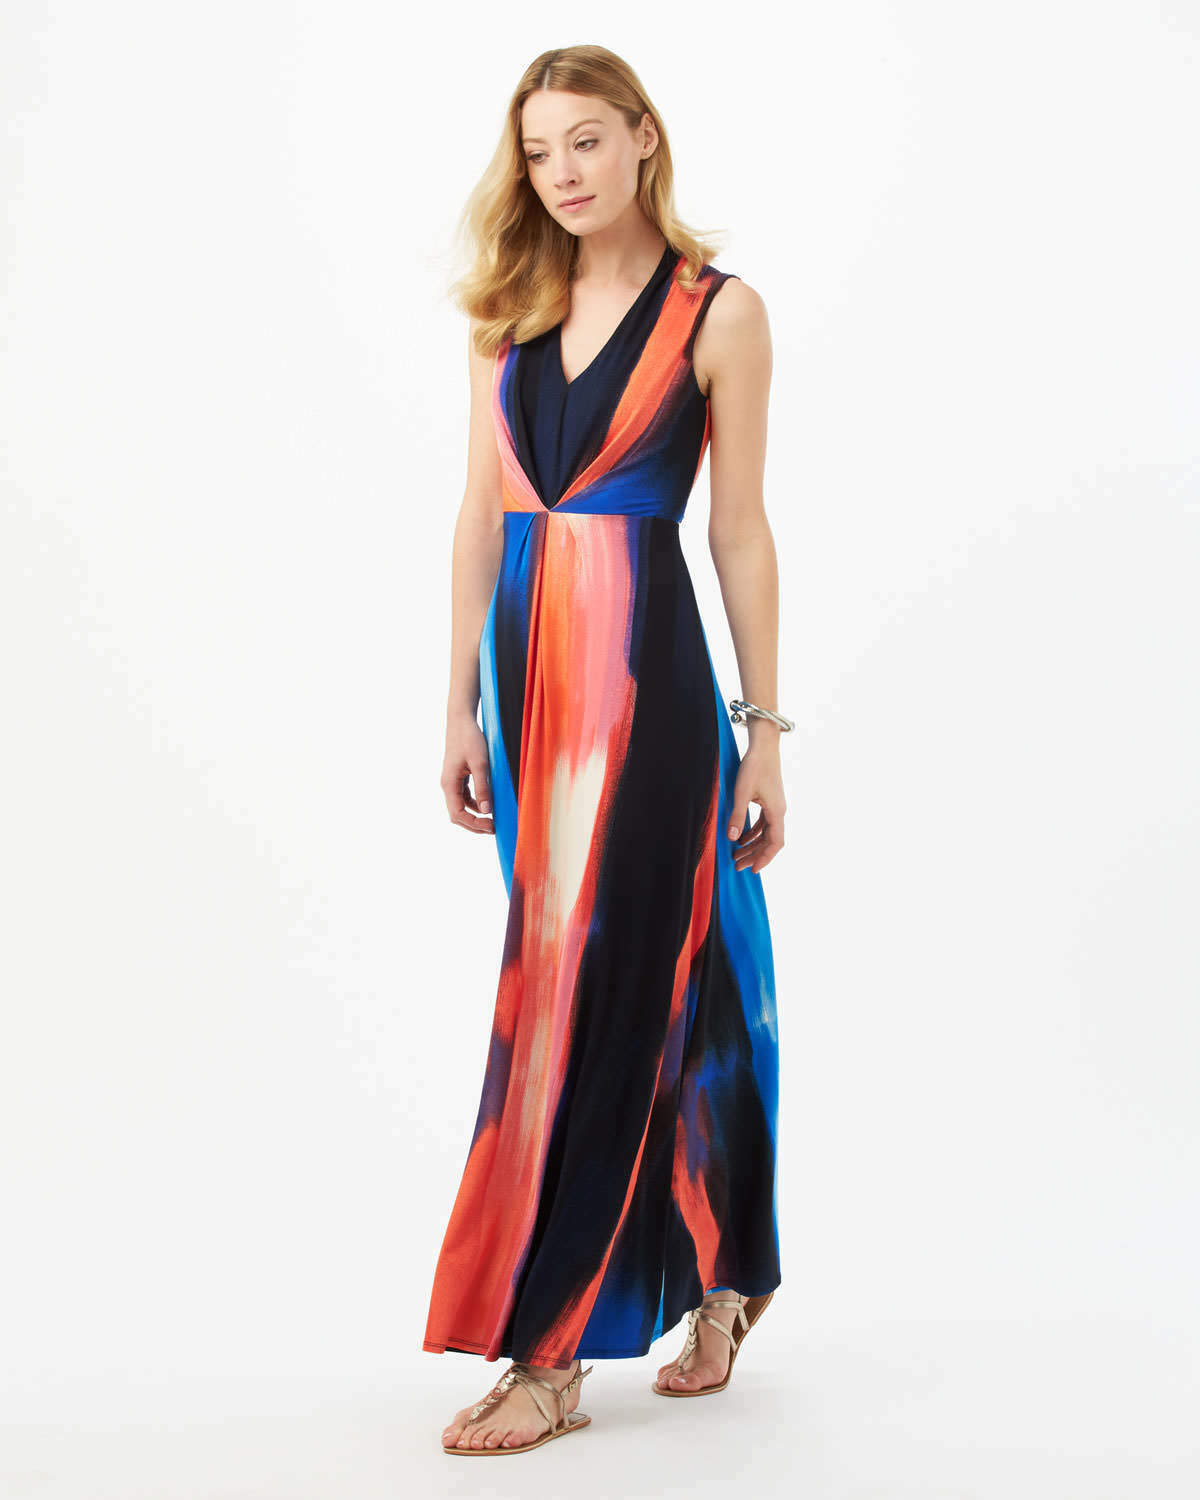 Phase Eight Leona Print Maxi Dress Multi Colourot Größe UK 14 DH089 KK 05